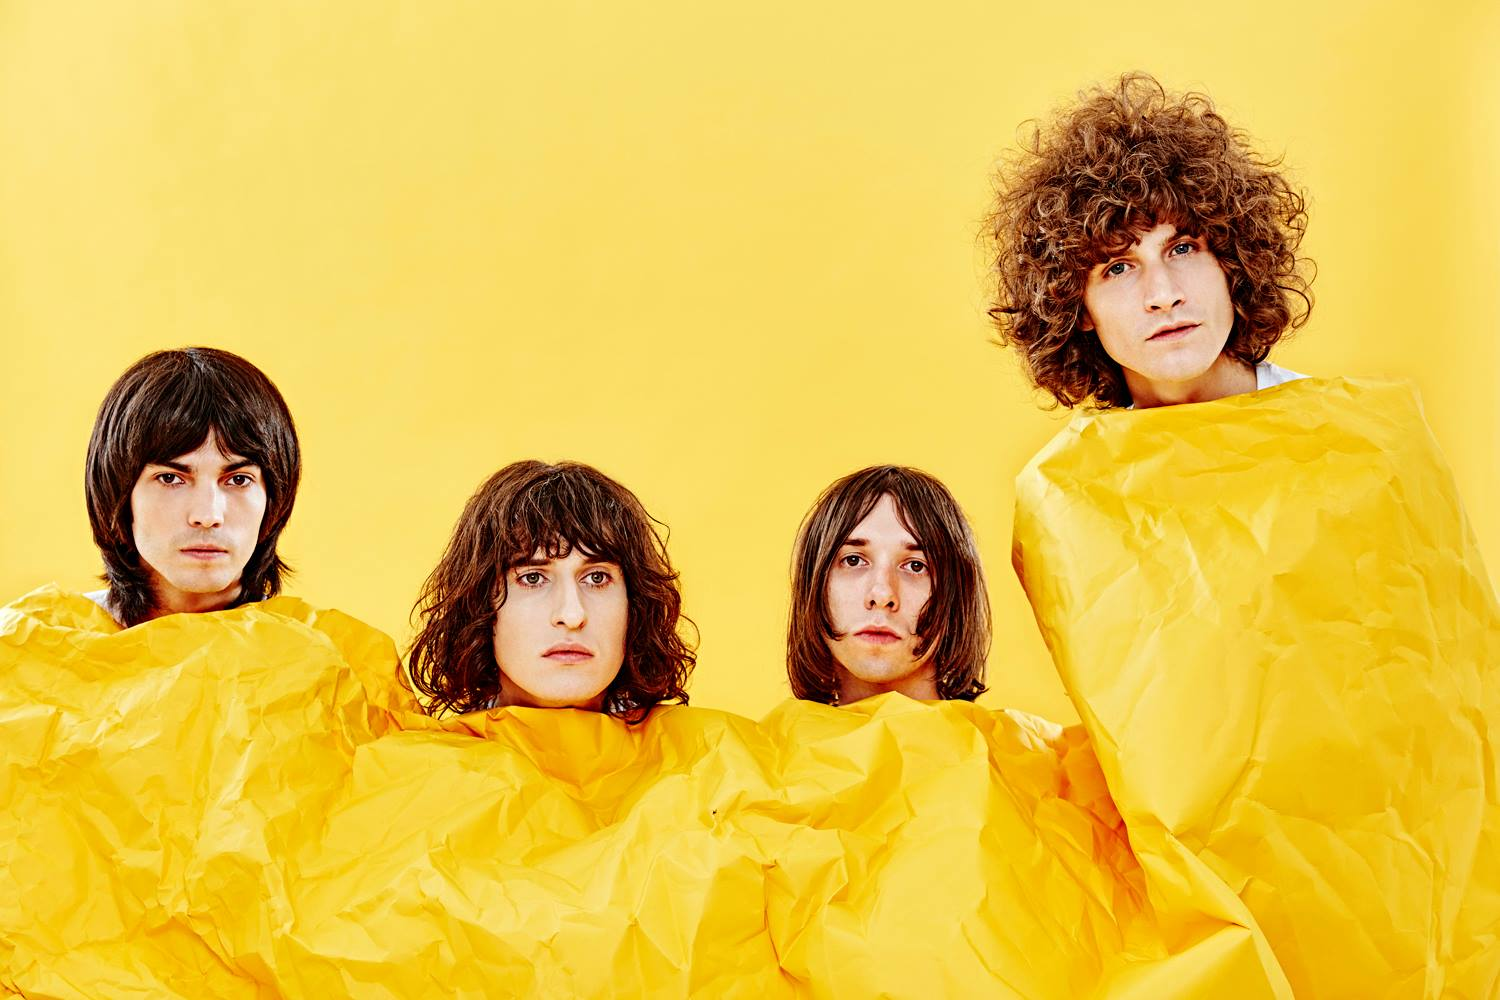 Temples latest band photo which is an ode to Pink Floyd. By Ed Miles.